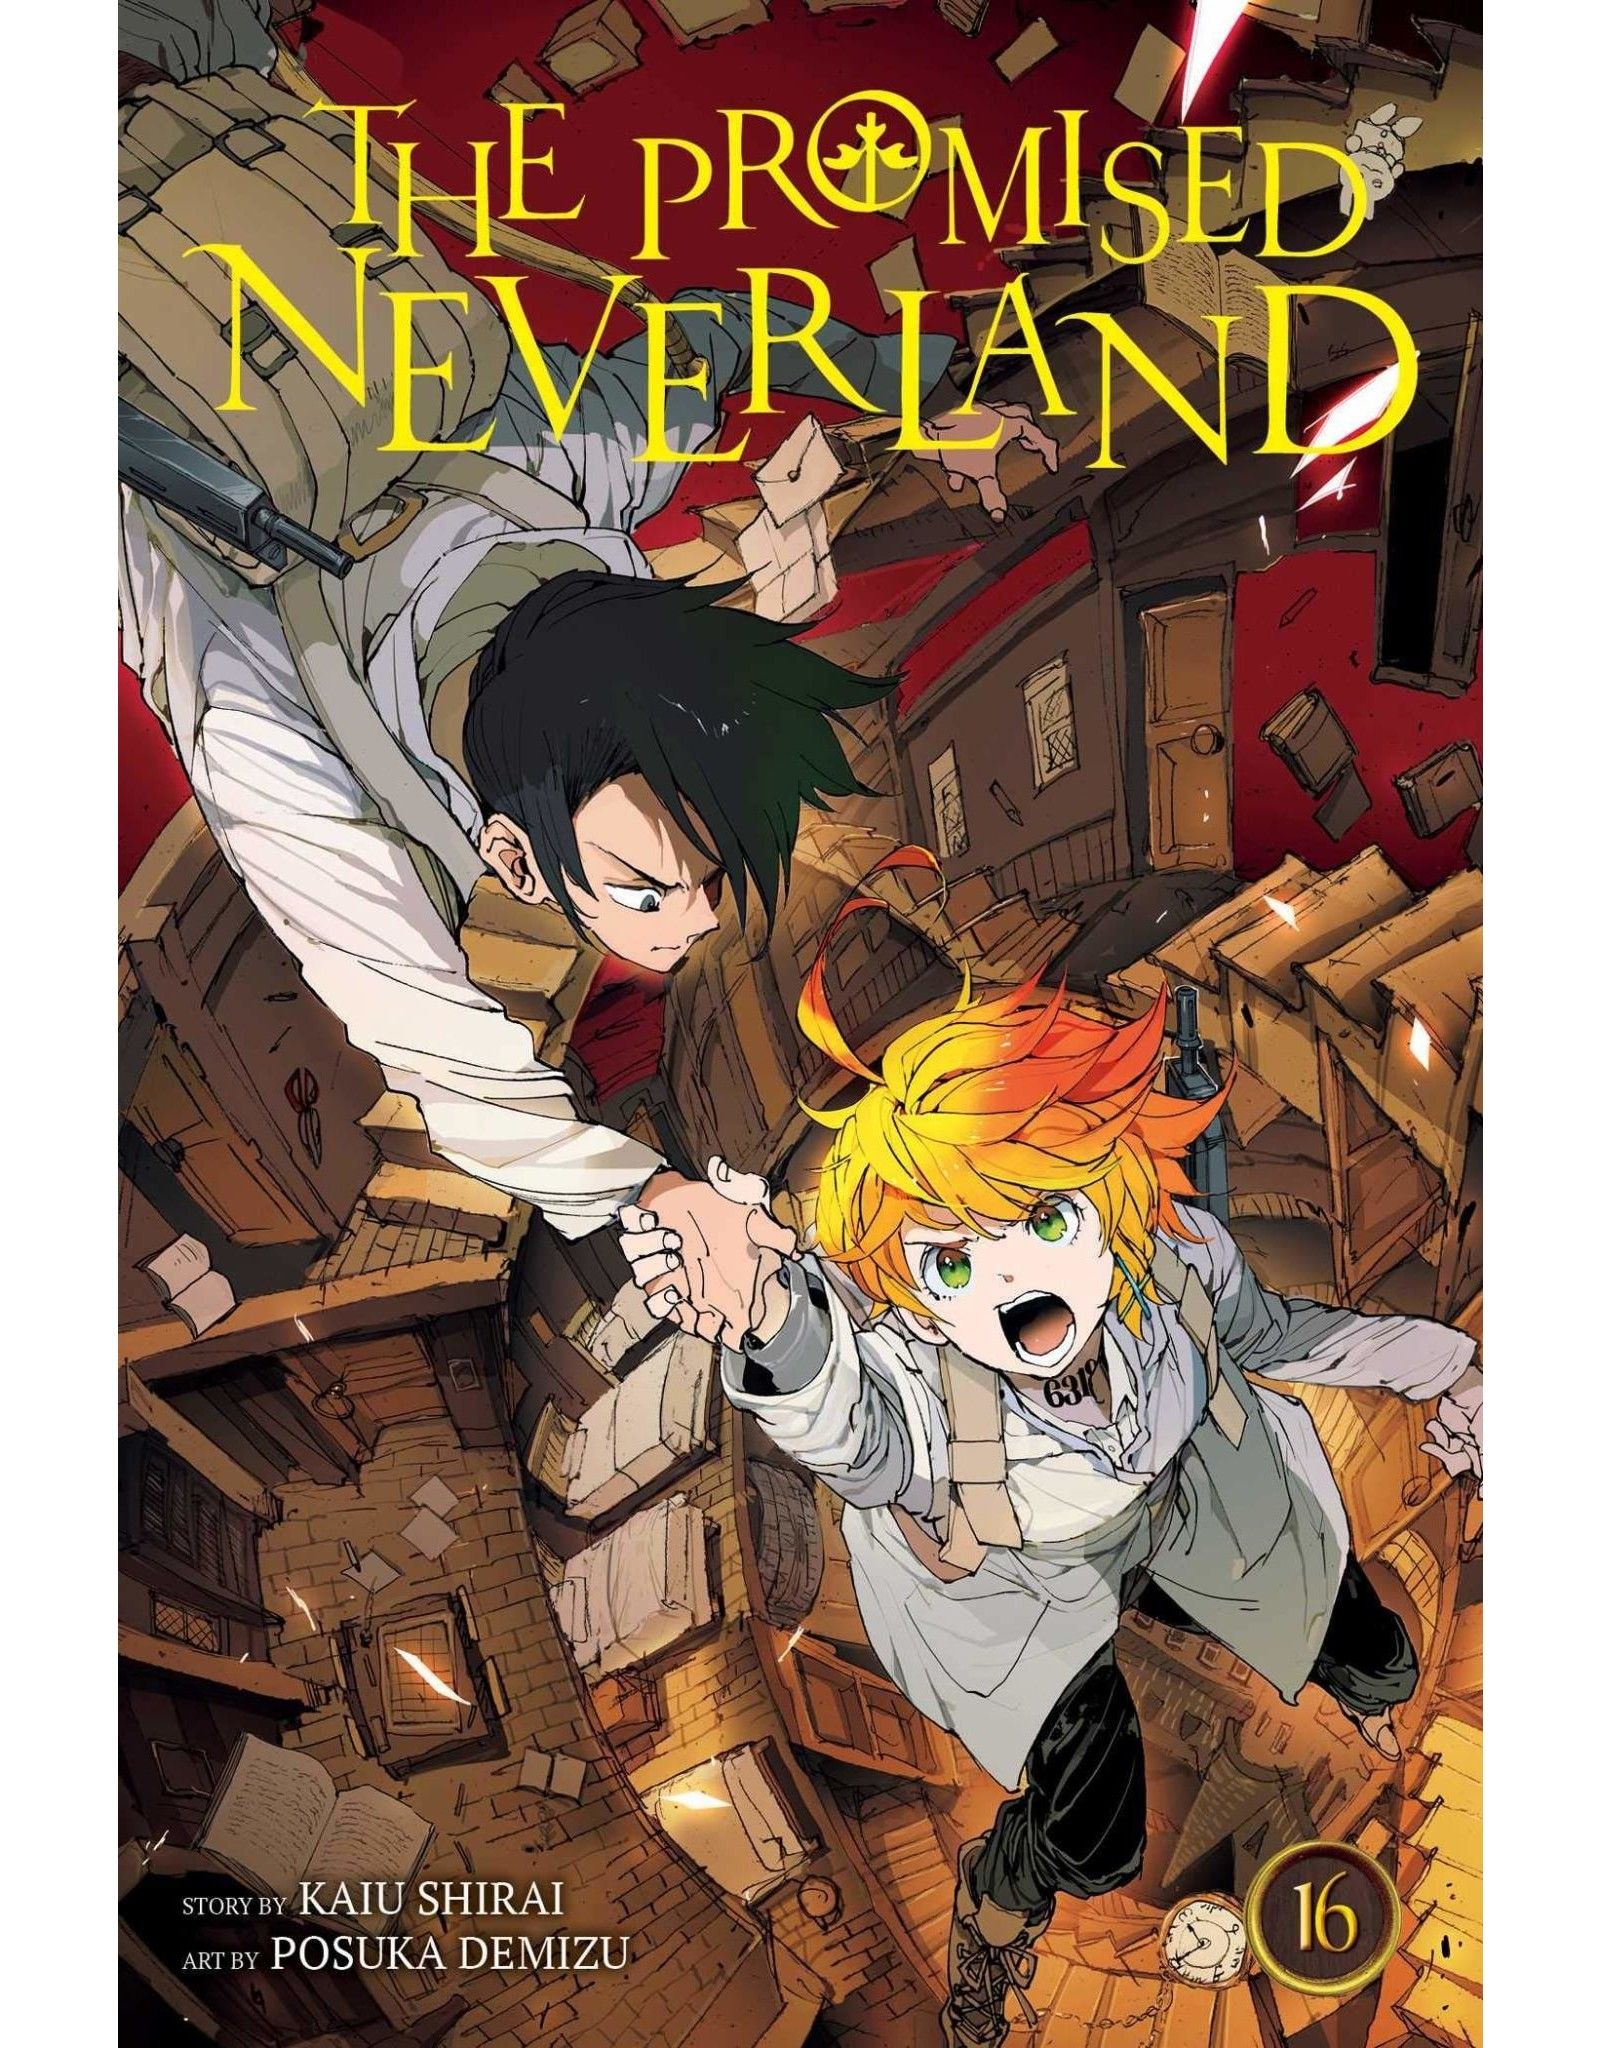 The Promised Neverland 16 (English version)